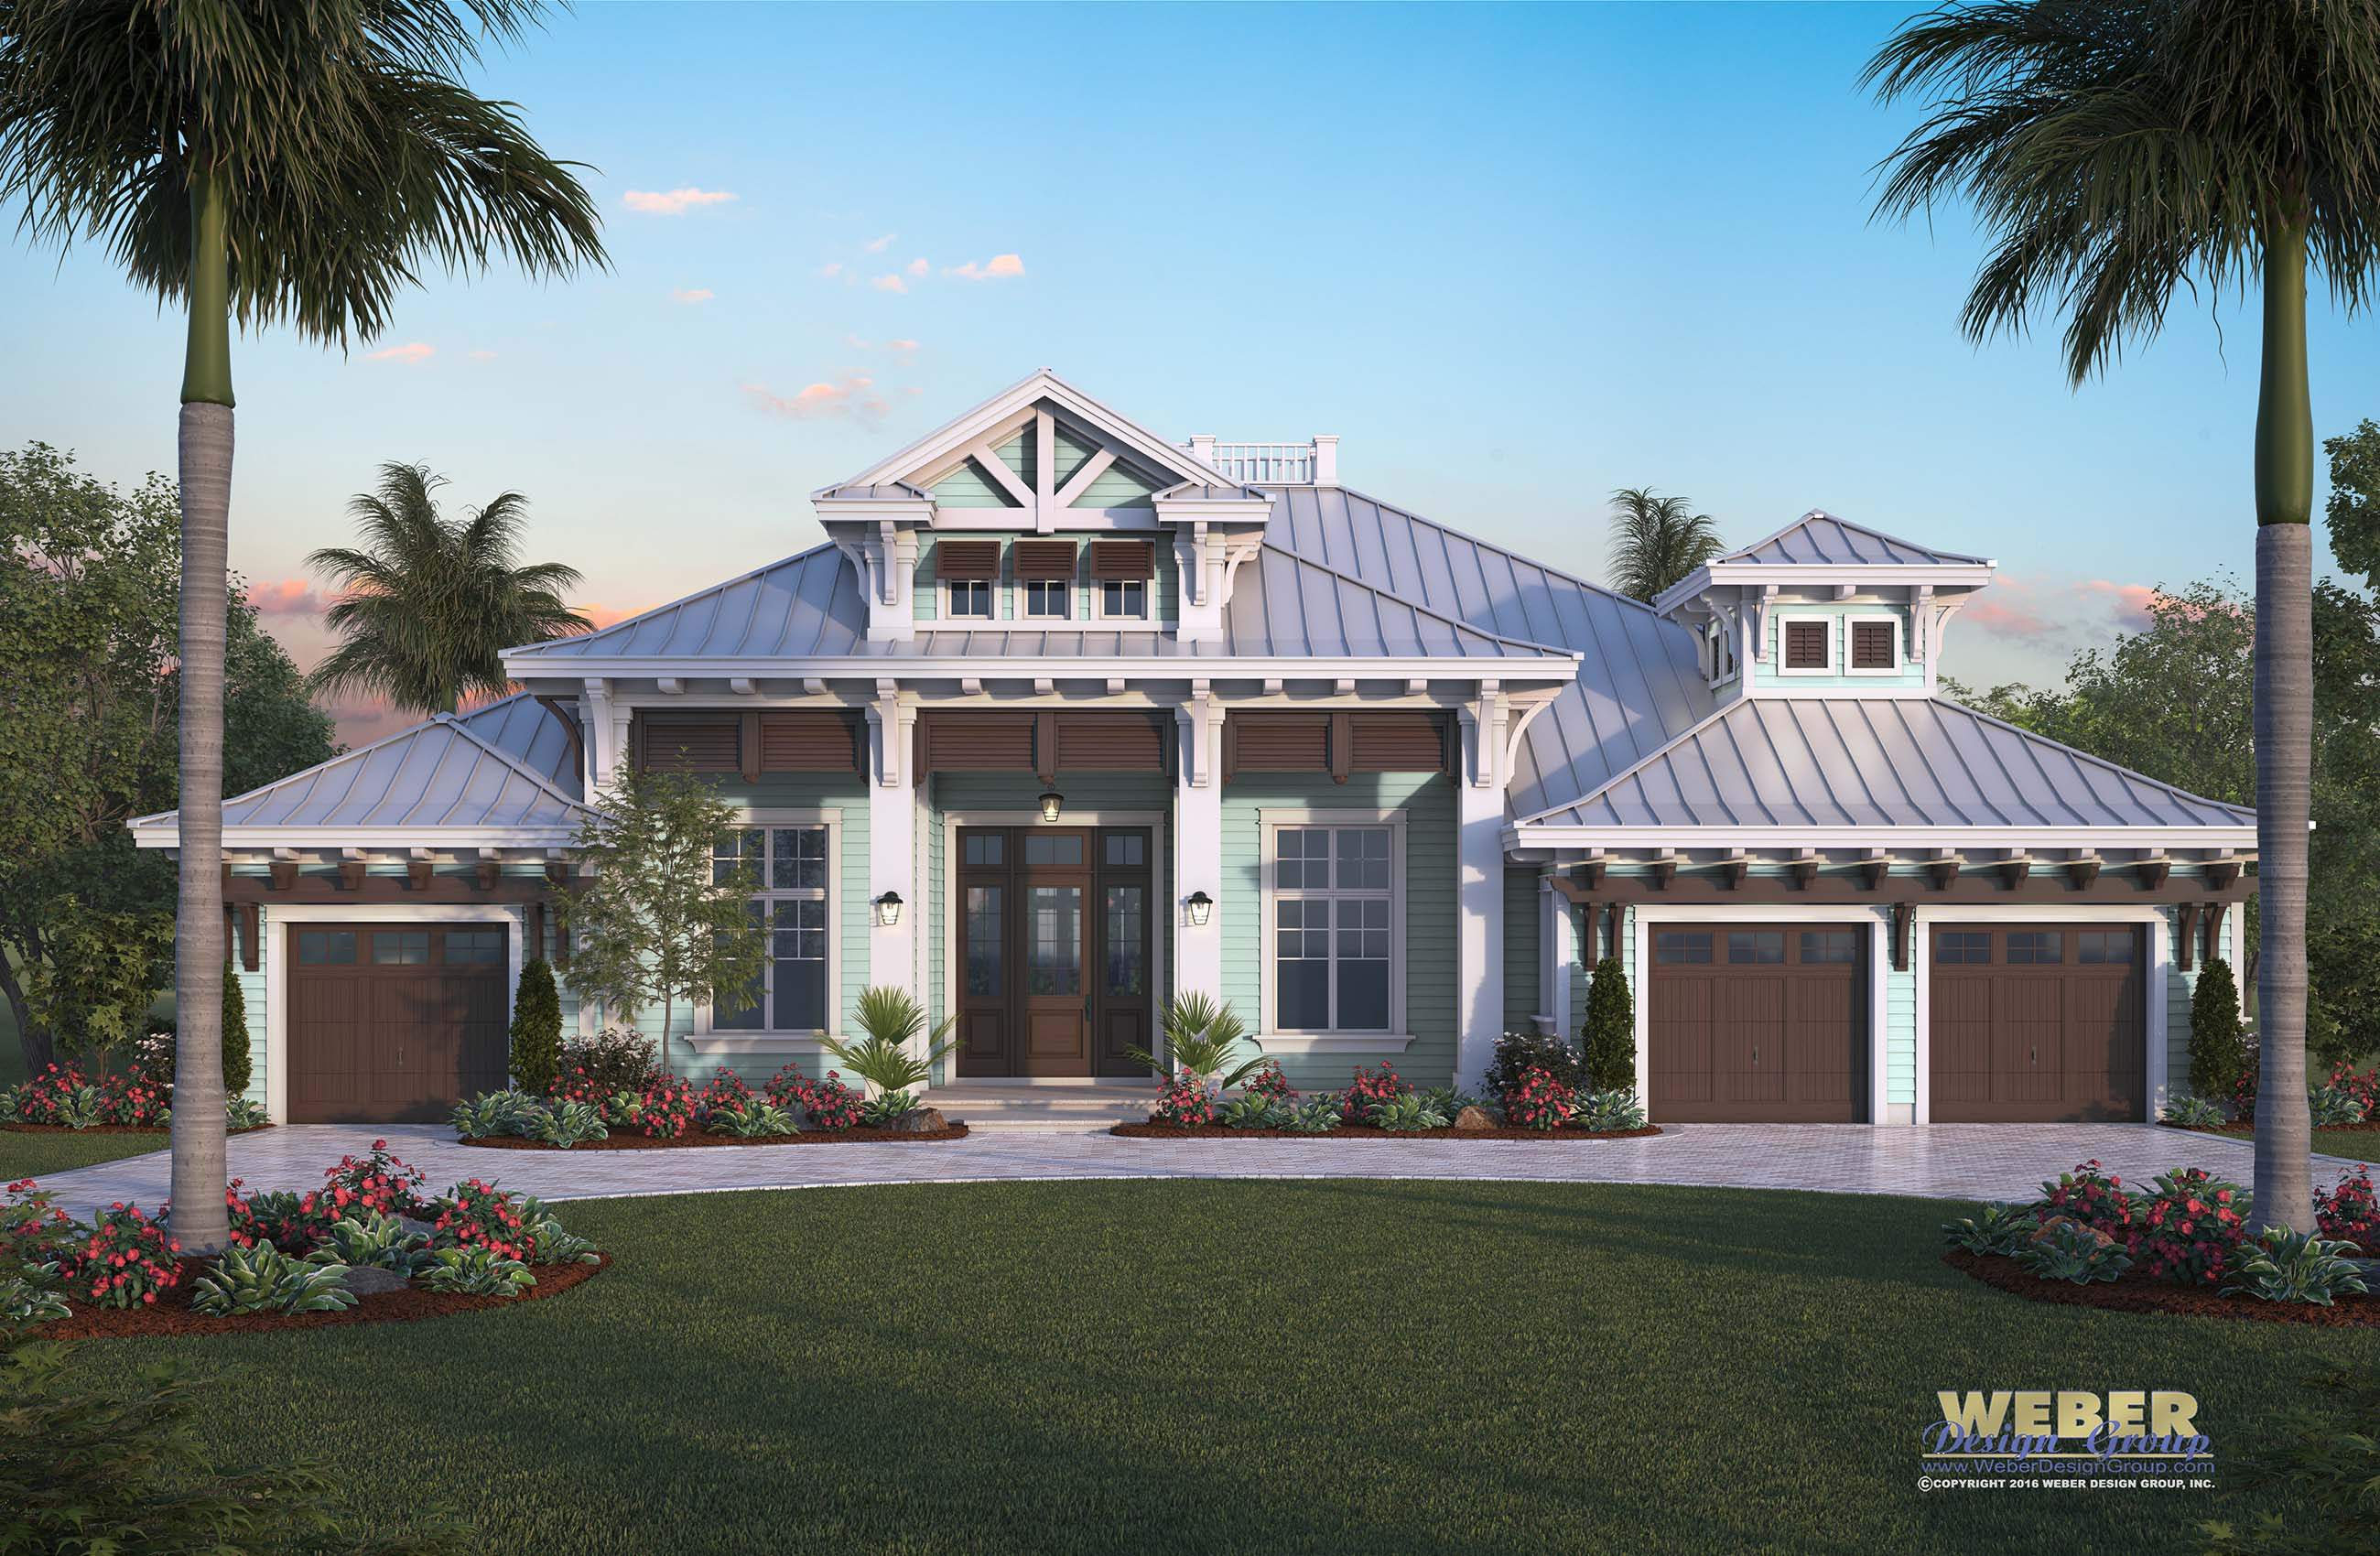 Harbor house plan luxury caribbean beach home outdoor for Caribbean home plans